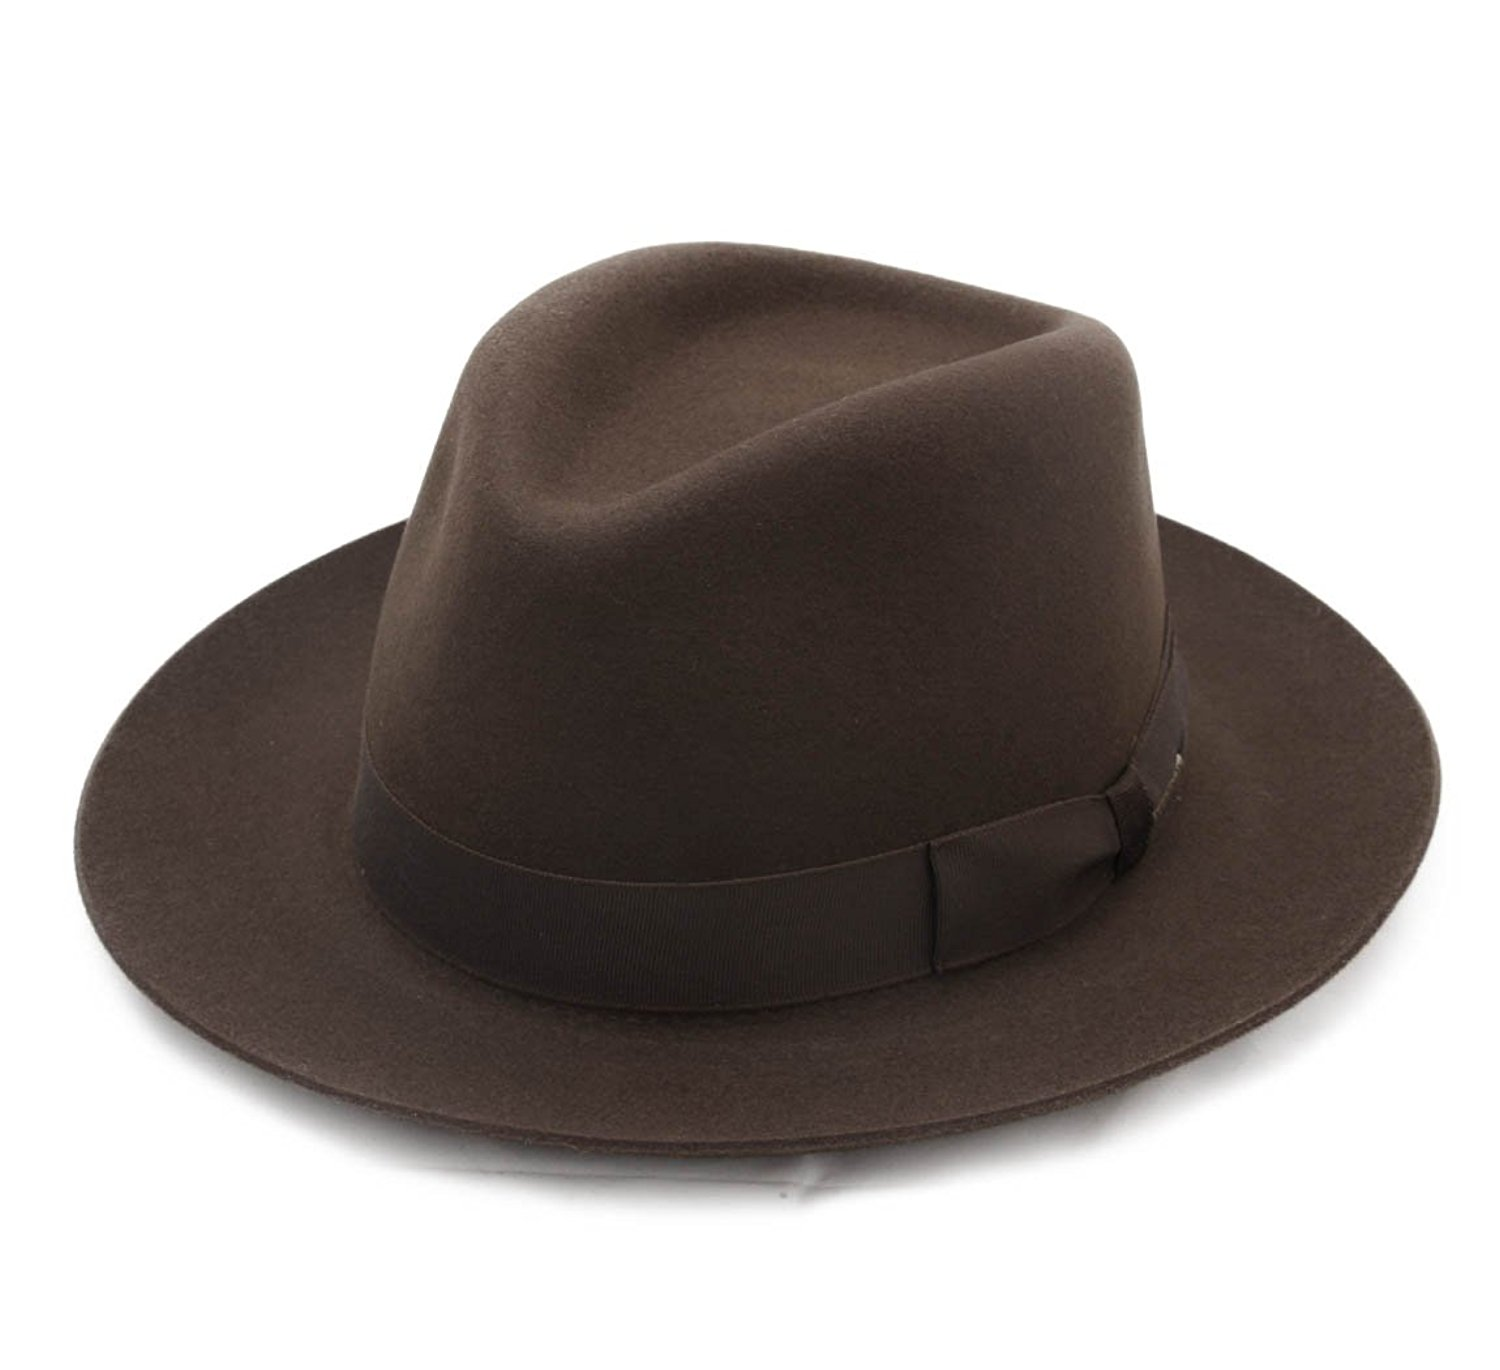 1ba15683a21 Cheap Fedora Stetson, find Fedora Stetson deals on line at Alibaba.com